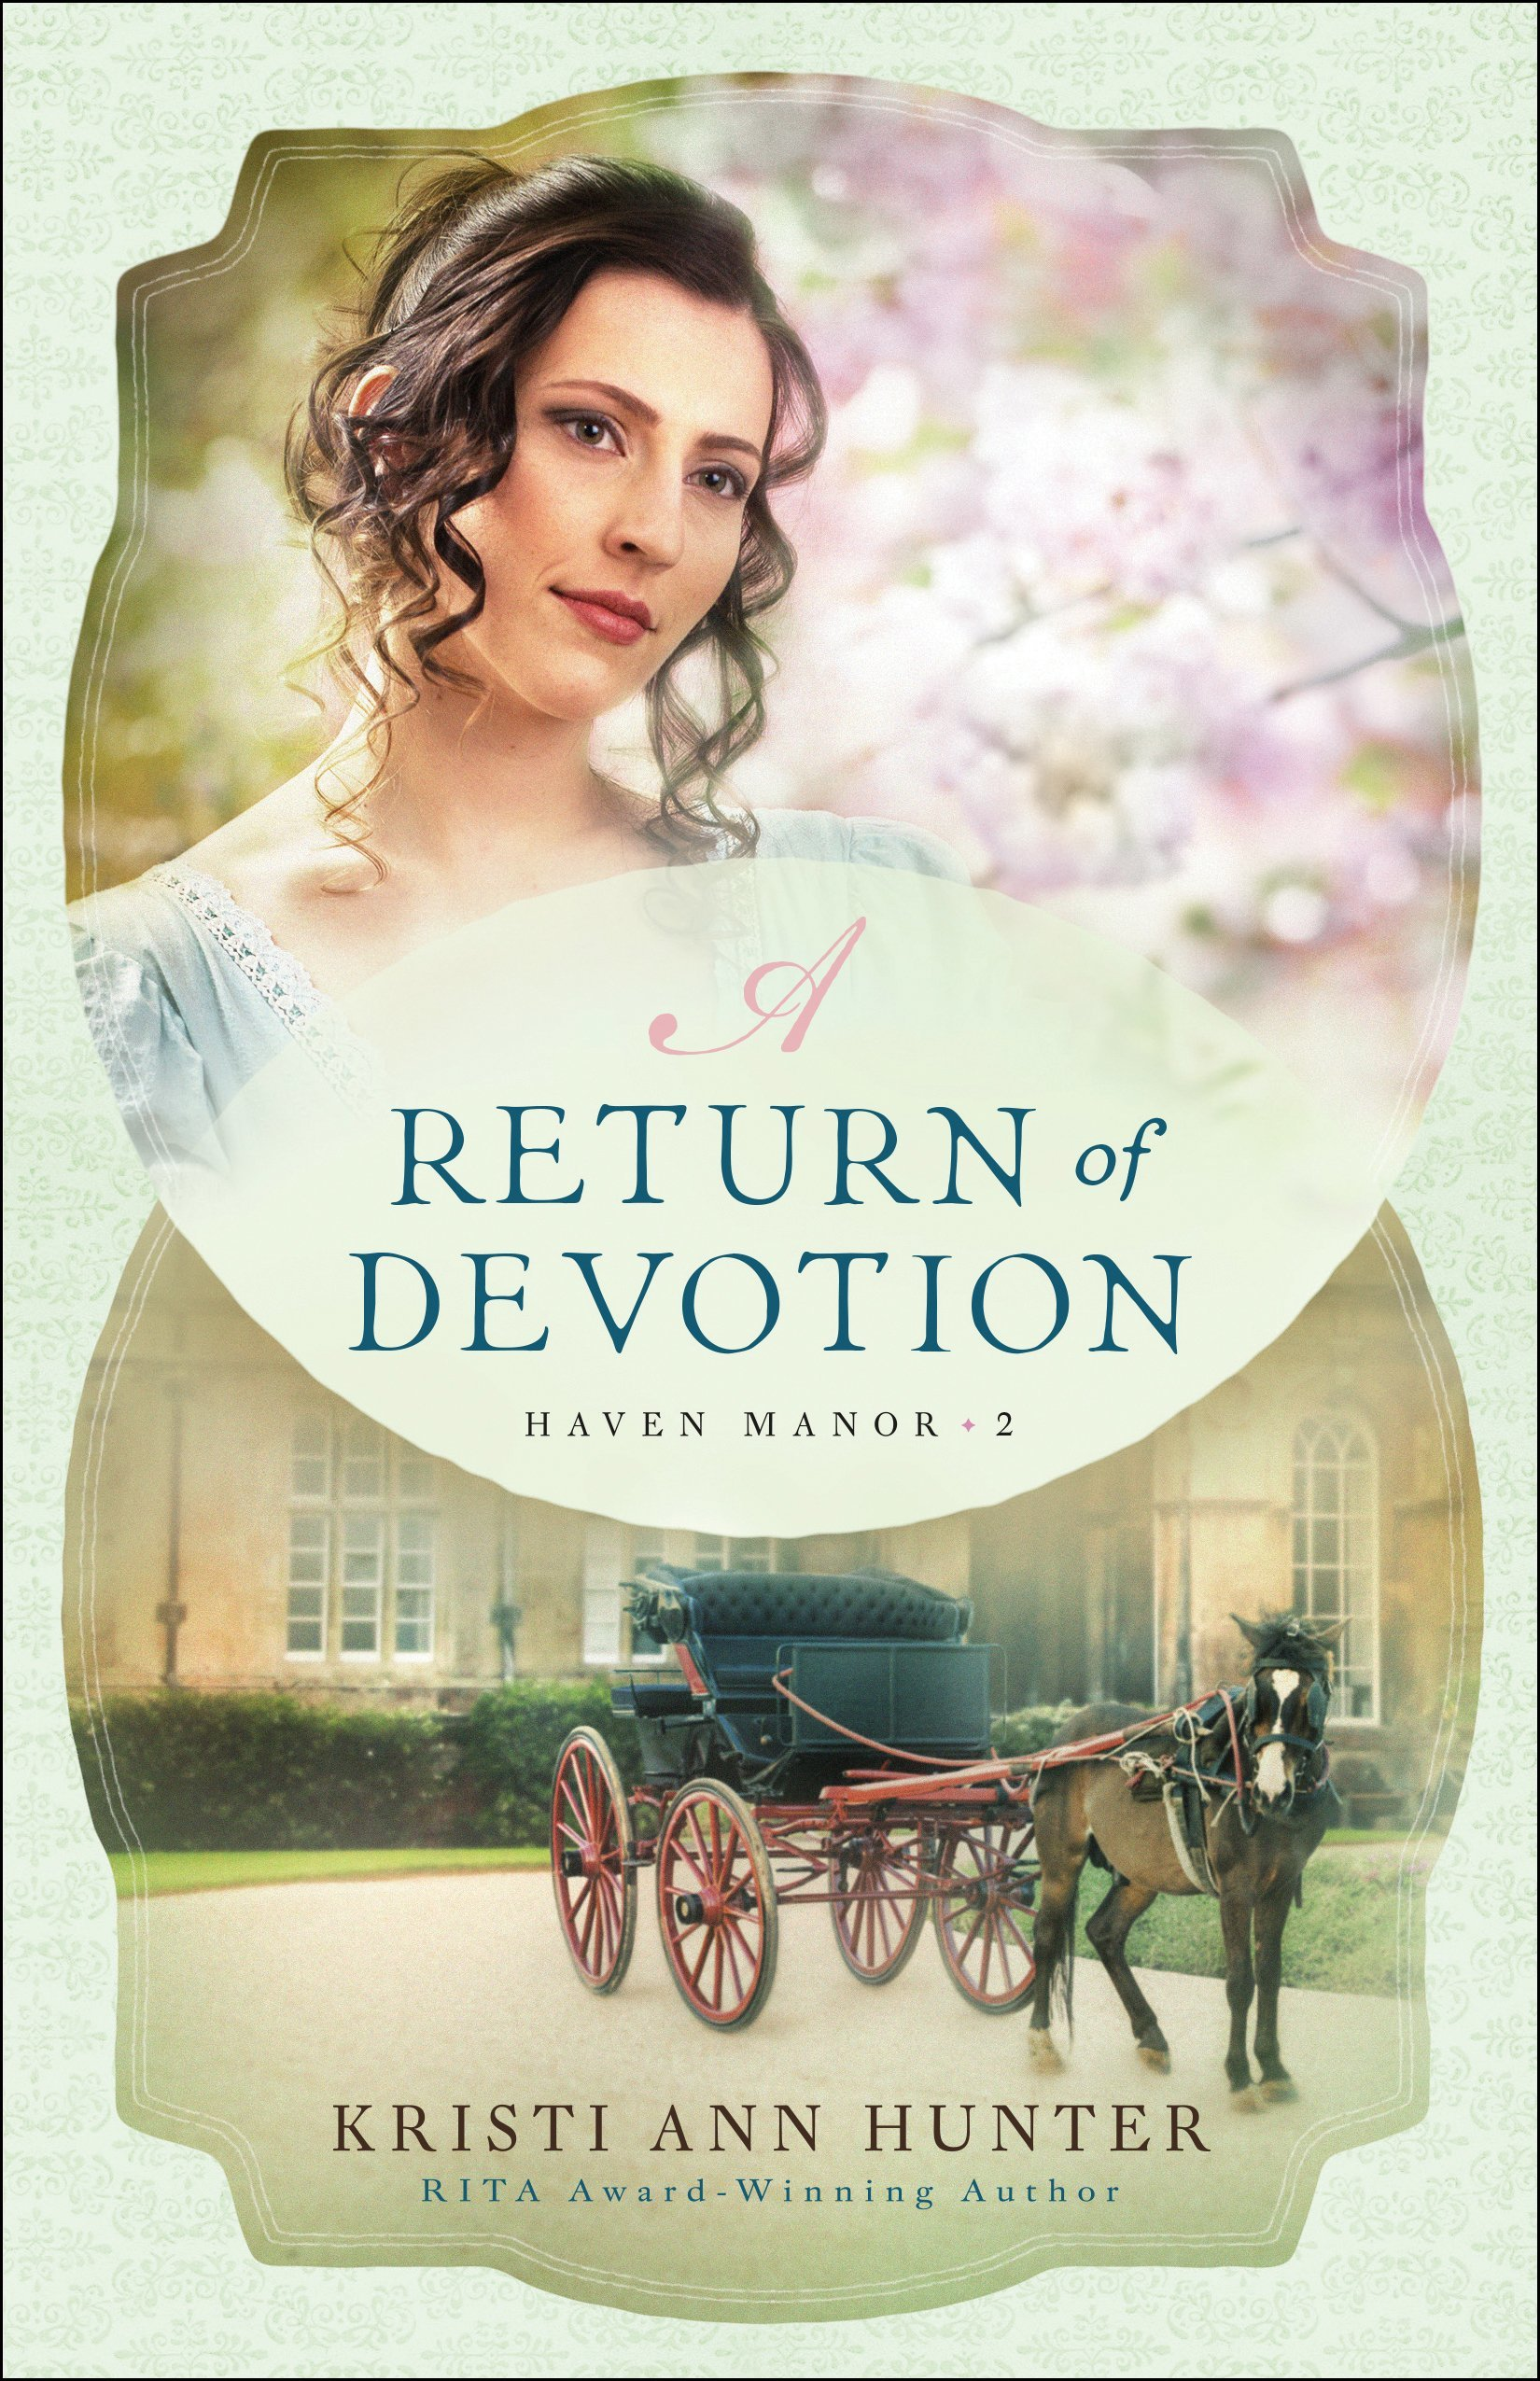 A Return of Devotion (Haven Manor, #2)